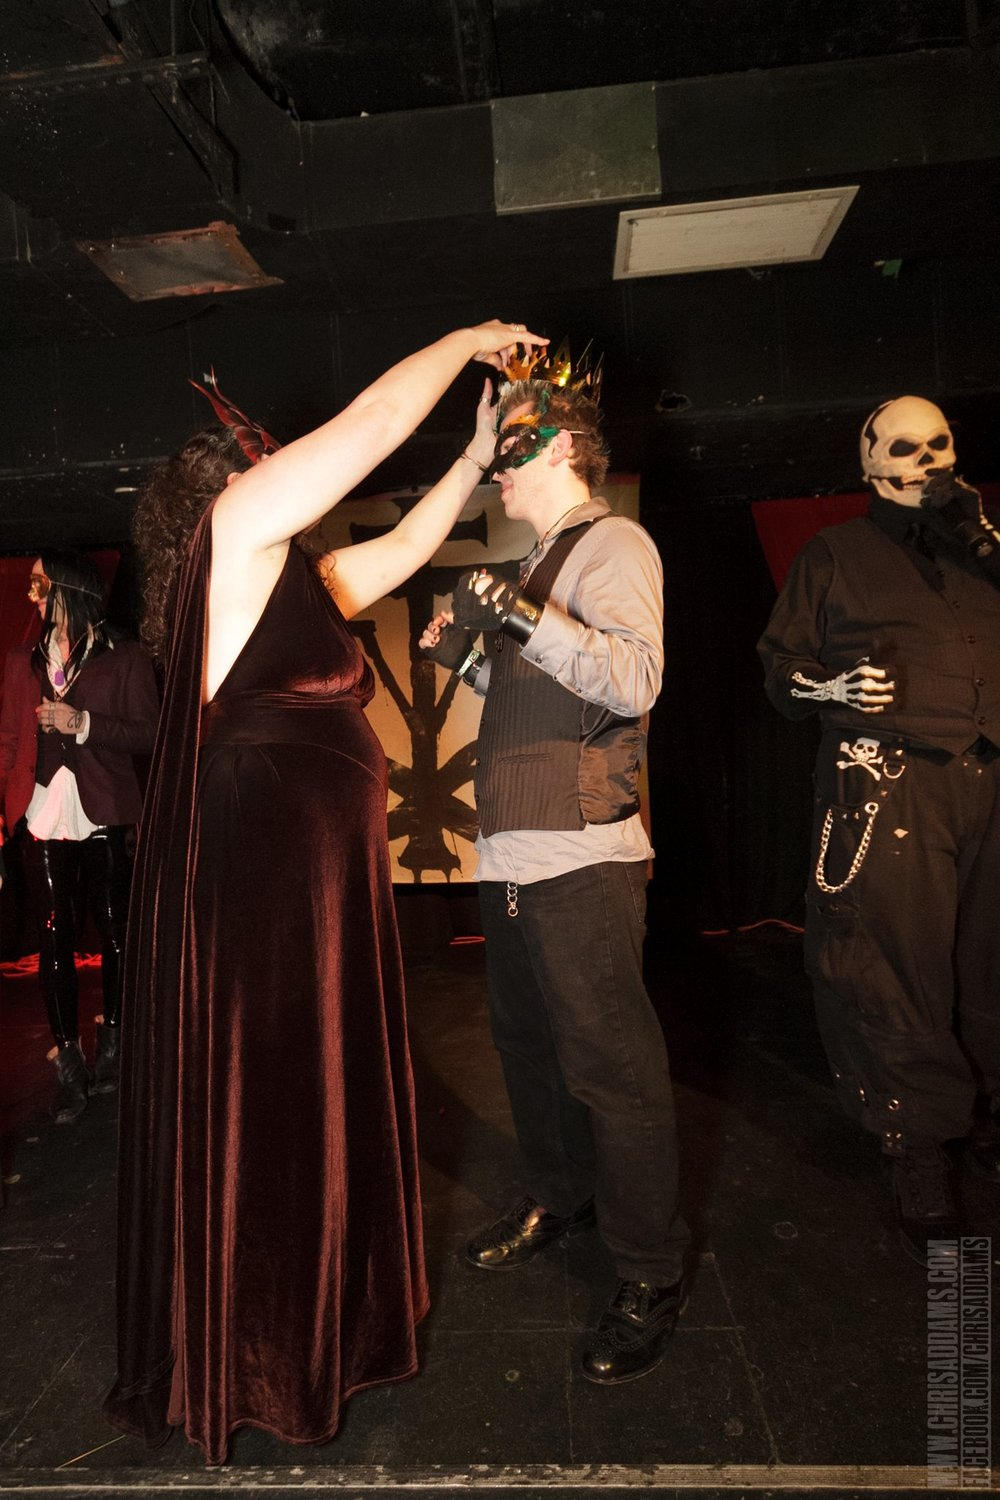 TheHavenClub-Goth-Industrial-Dance-Alternative-Northampton-MA (11).jpg